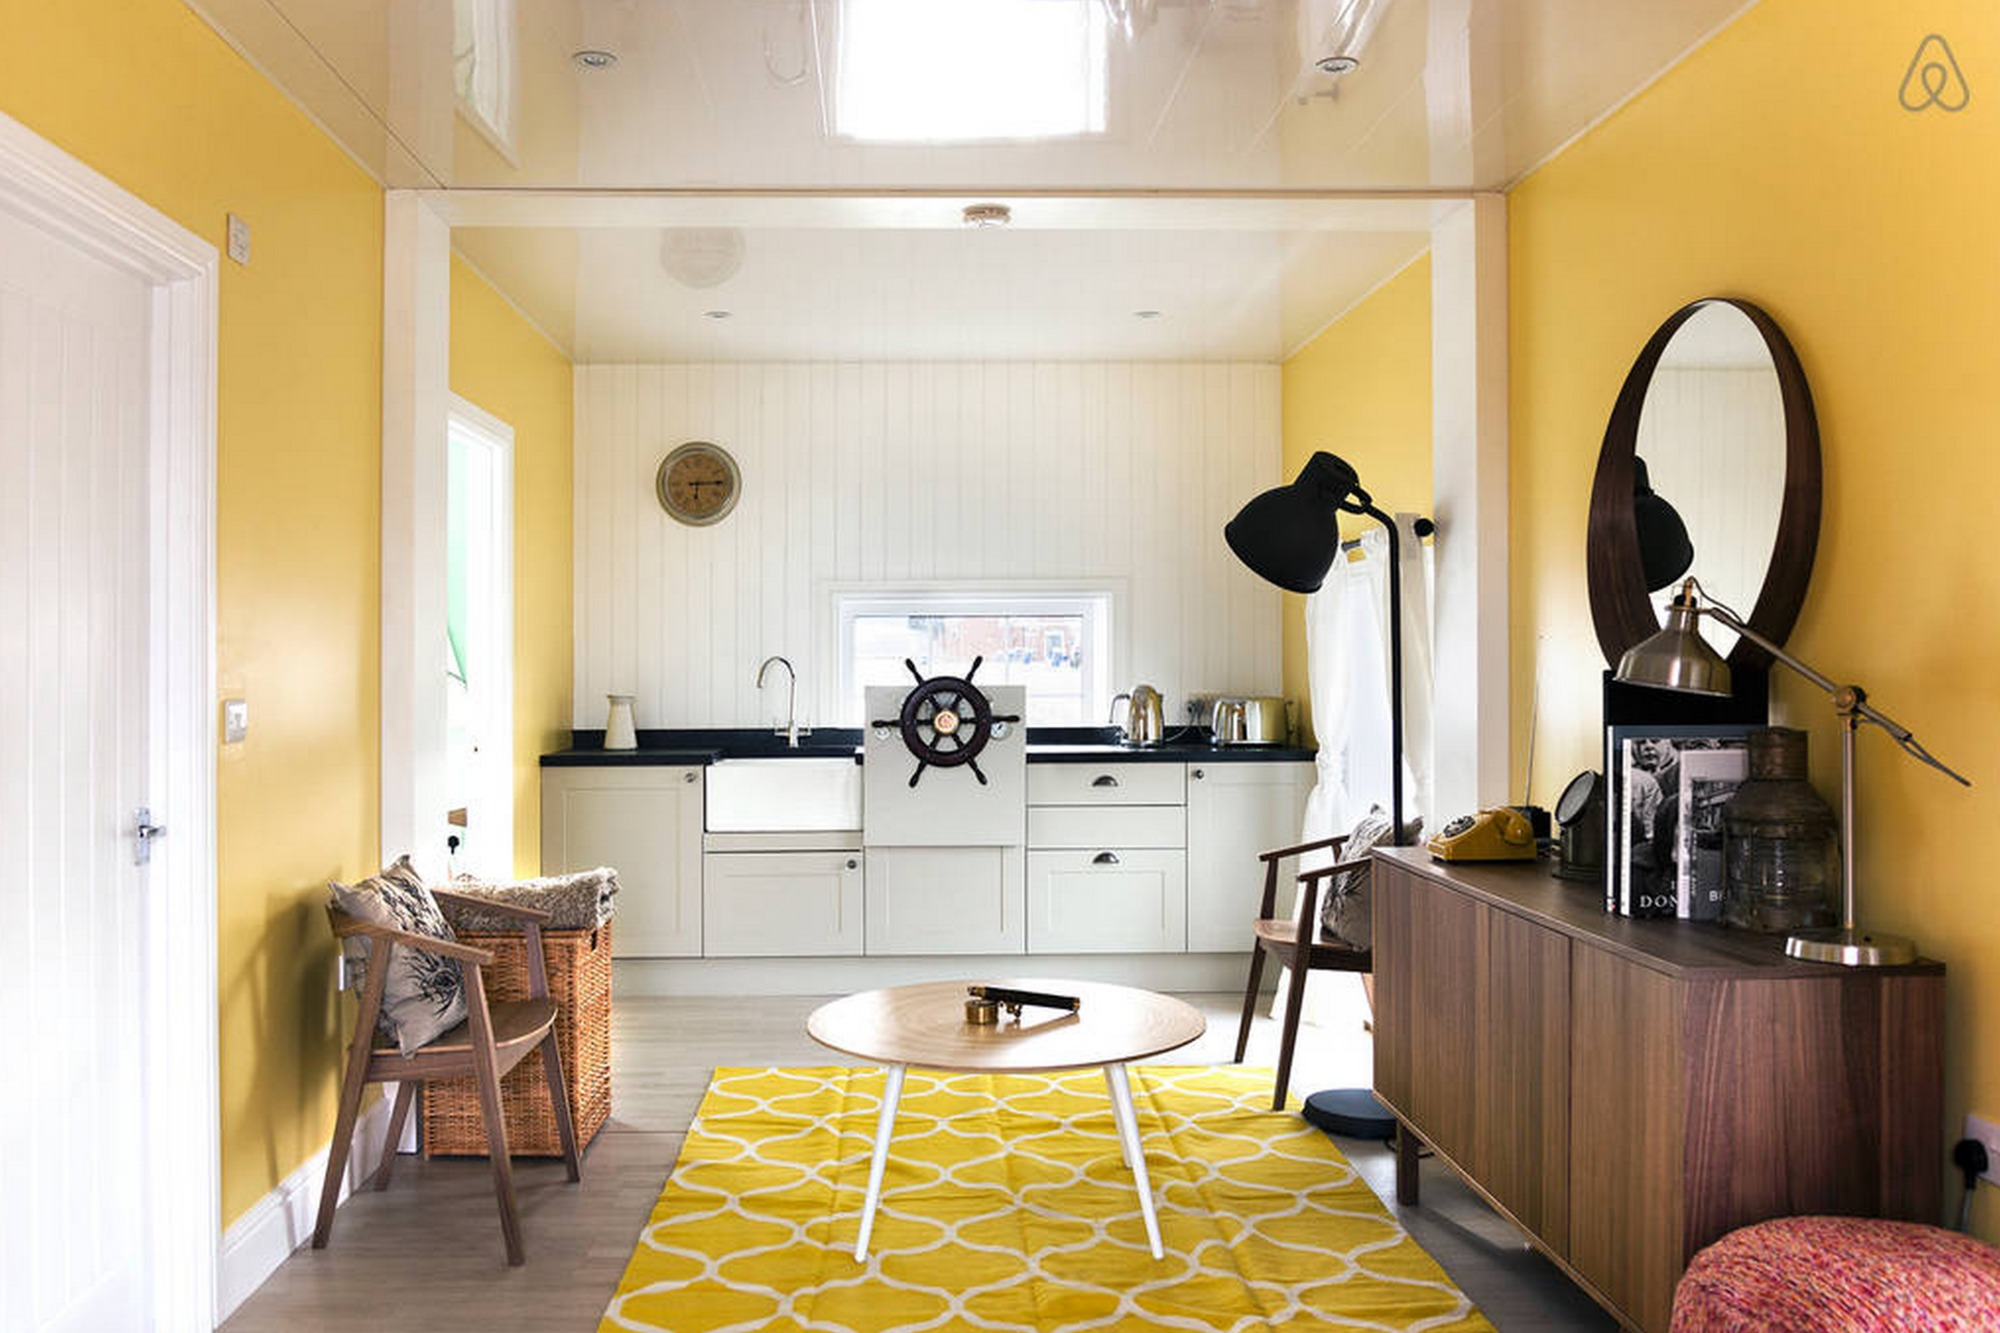 25 design tips to make your airbnb listing stand out | archdaily